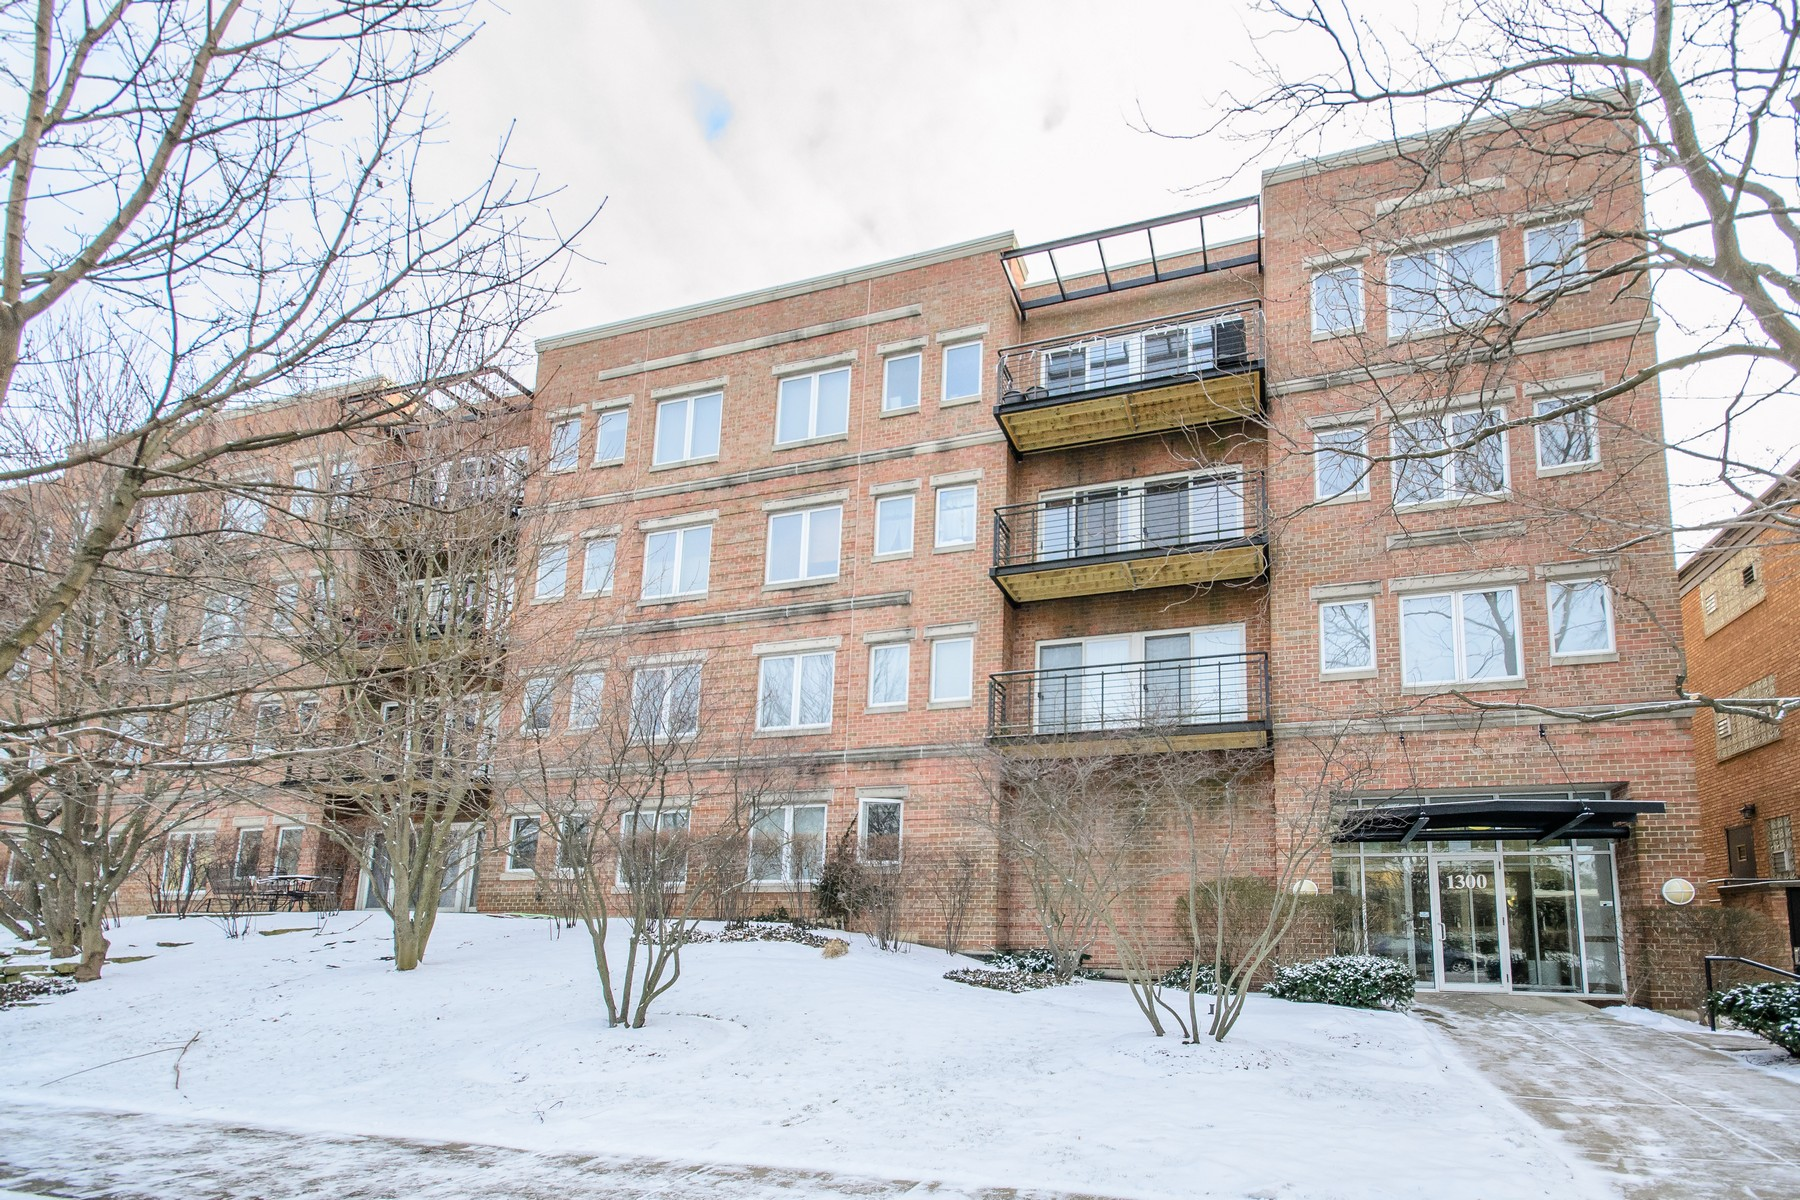 Property For Sale at Rarely Available Move-In Ready Condo